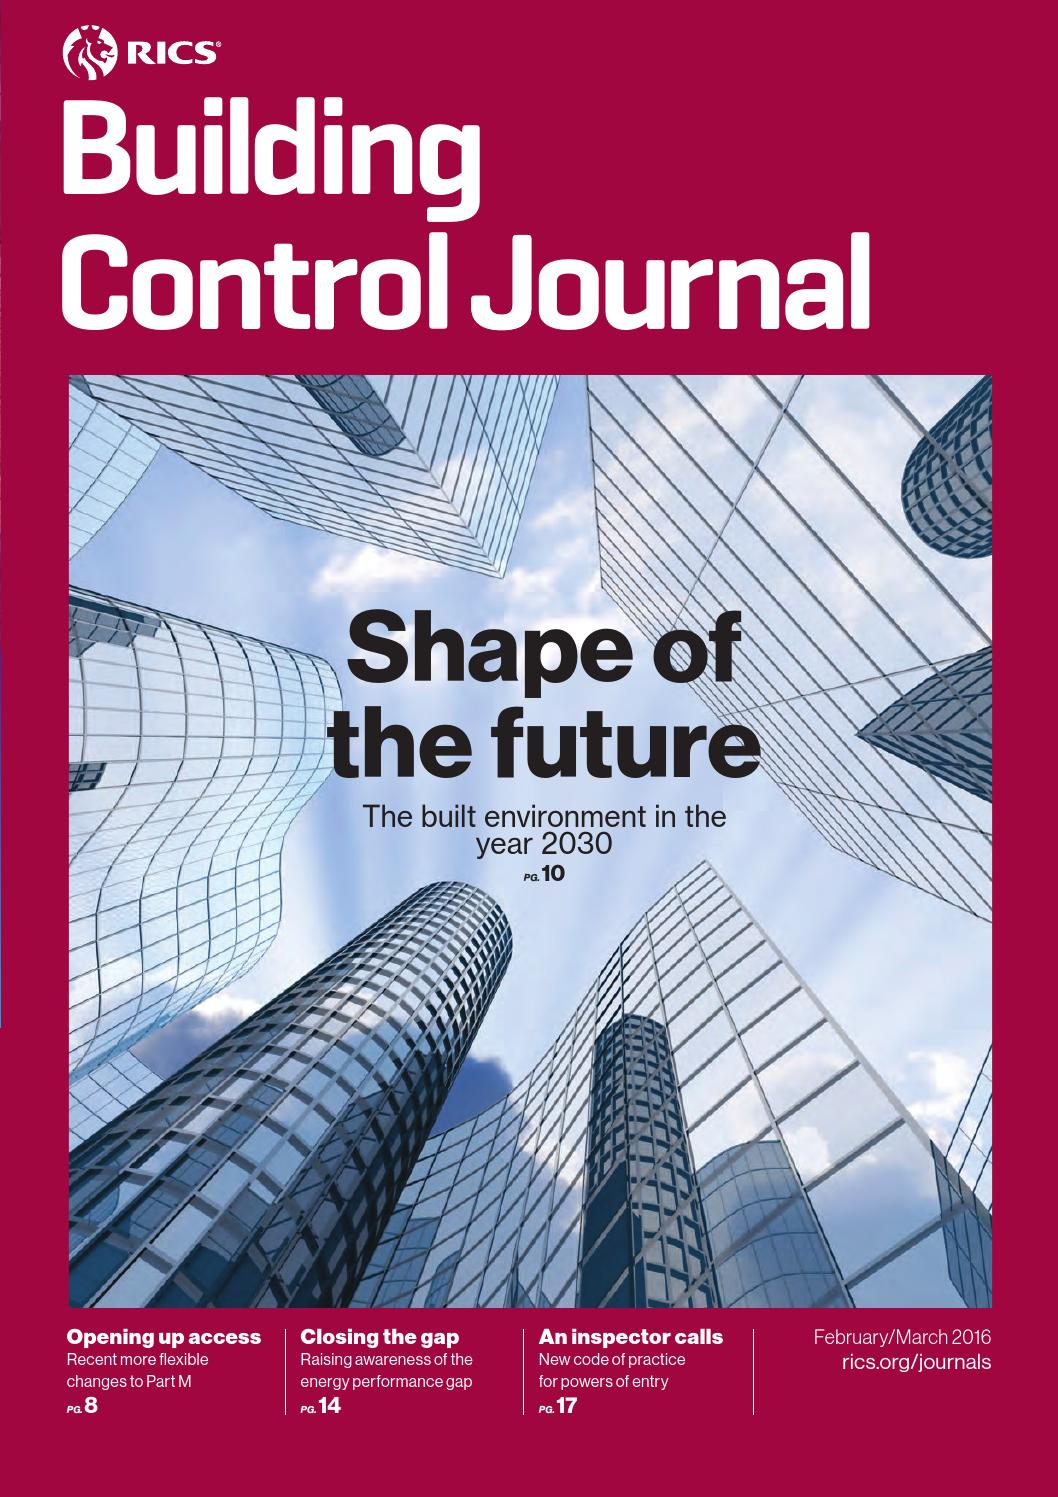 Building Control Journal February-March 2016